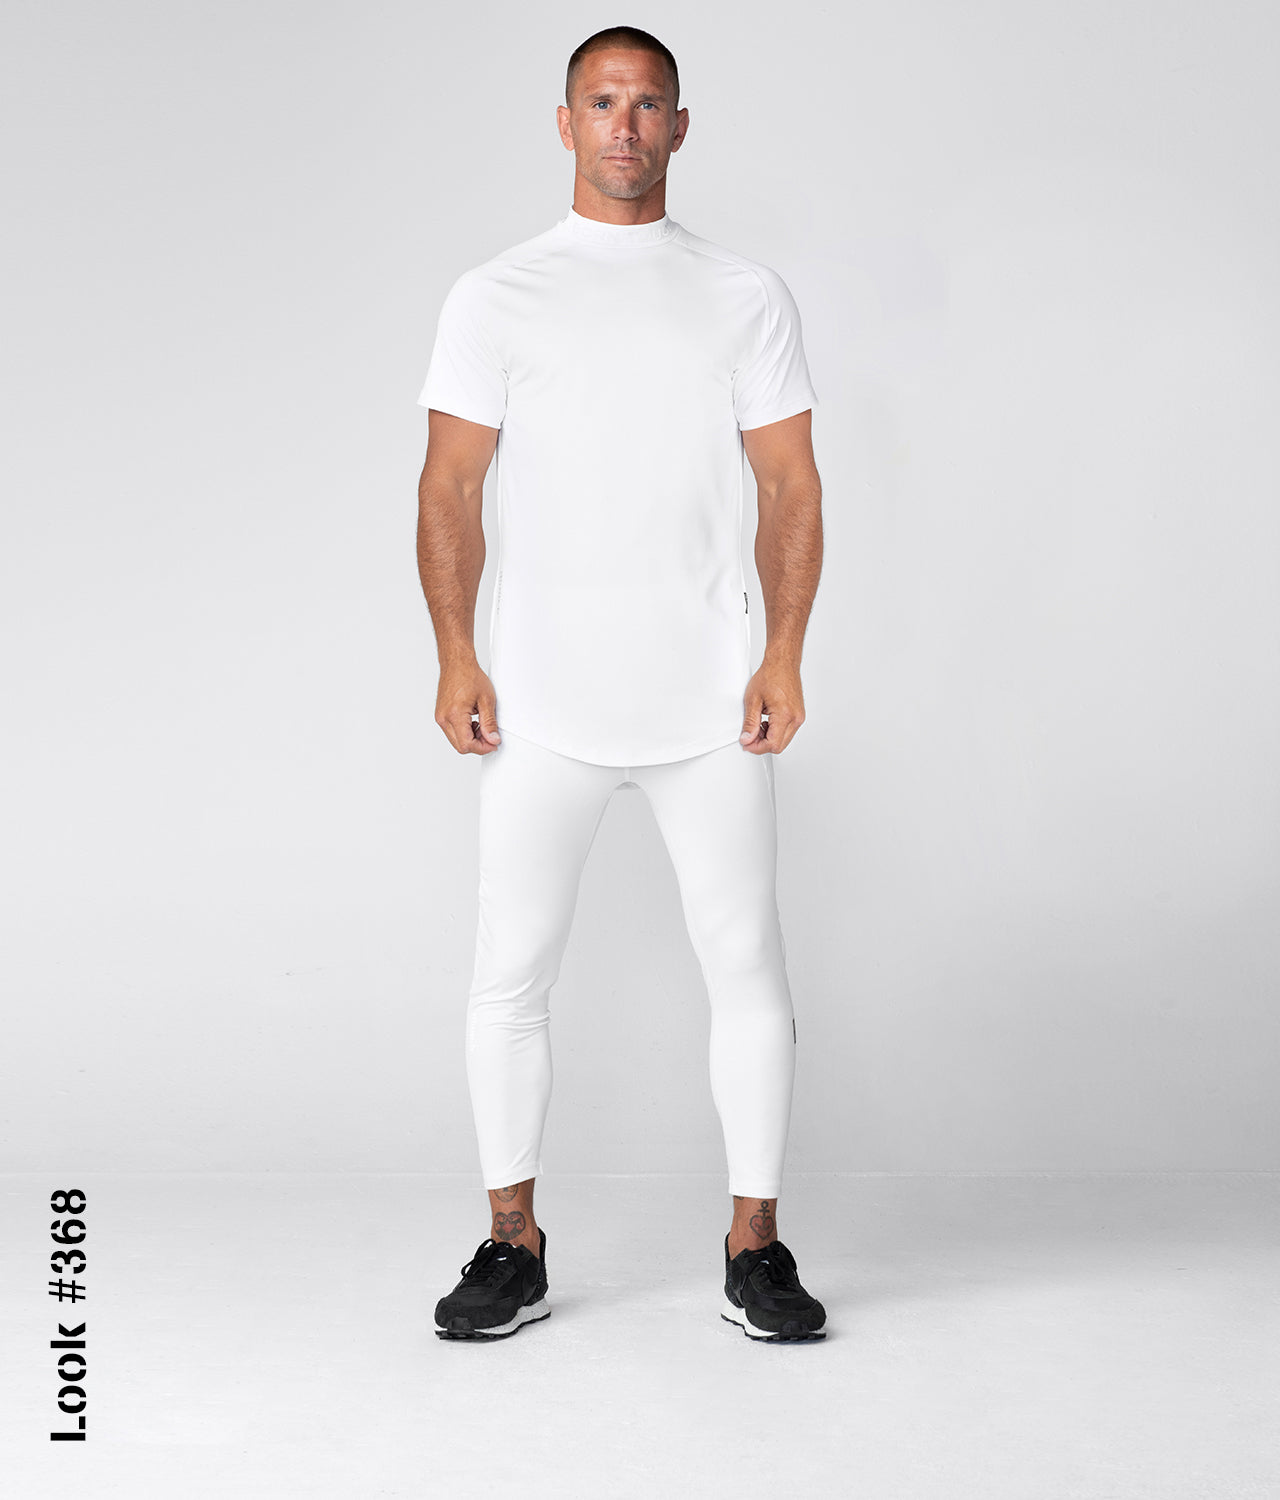 Born Tough Mock Neck High-Performance Short Sleeve Compression Gym Workout Shirt For Men White